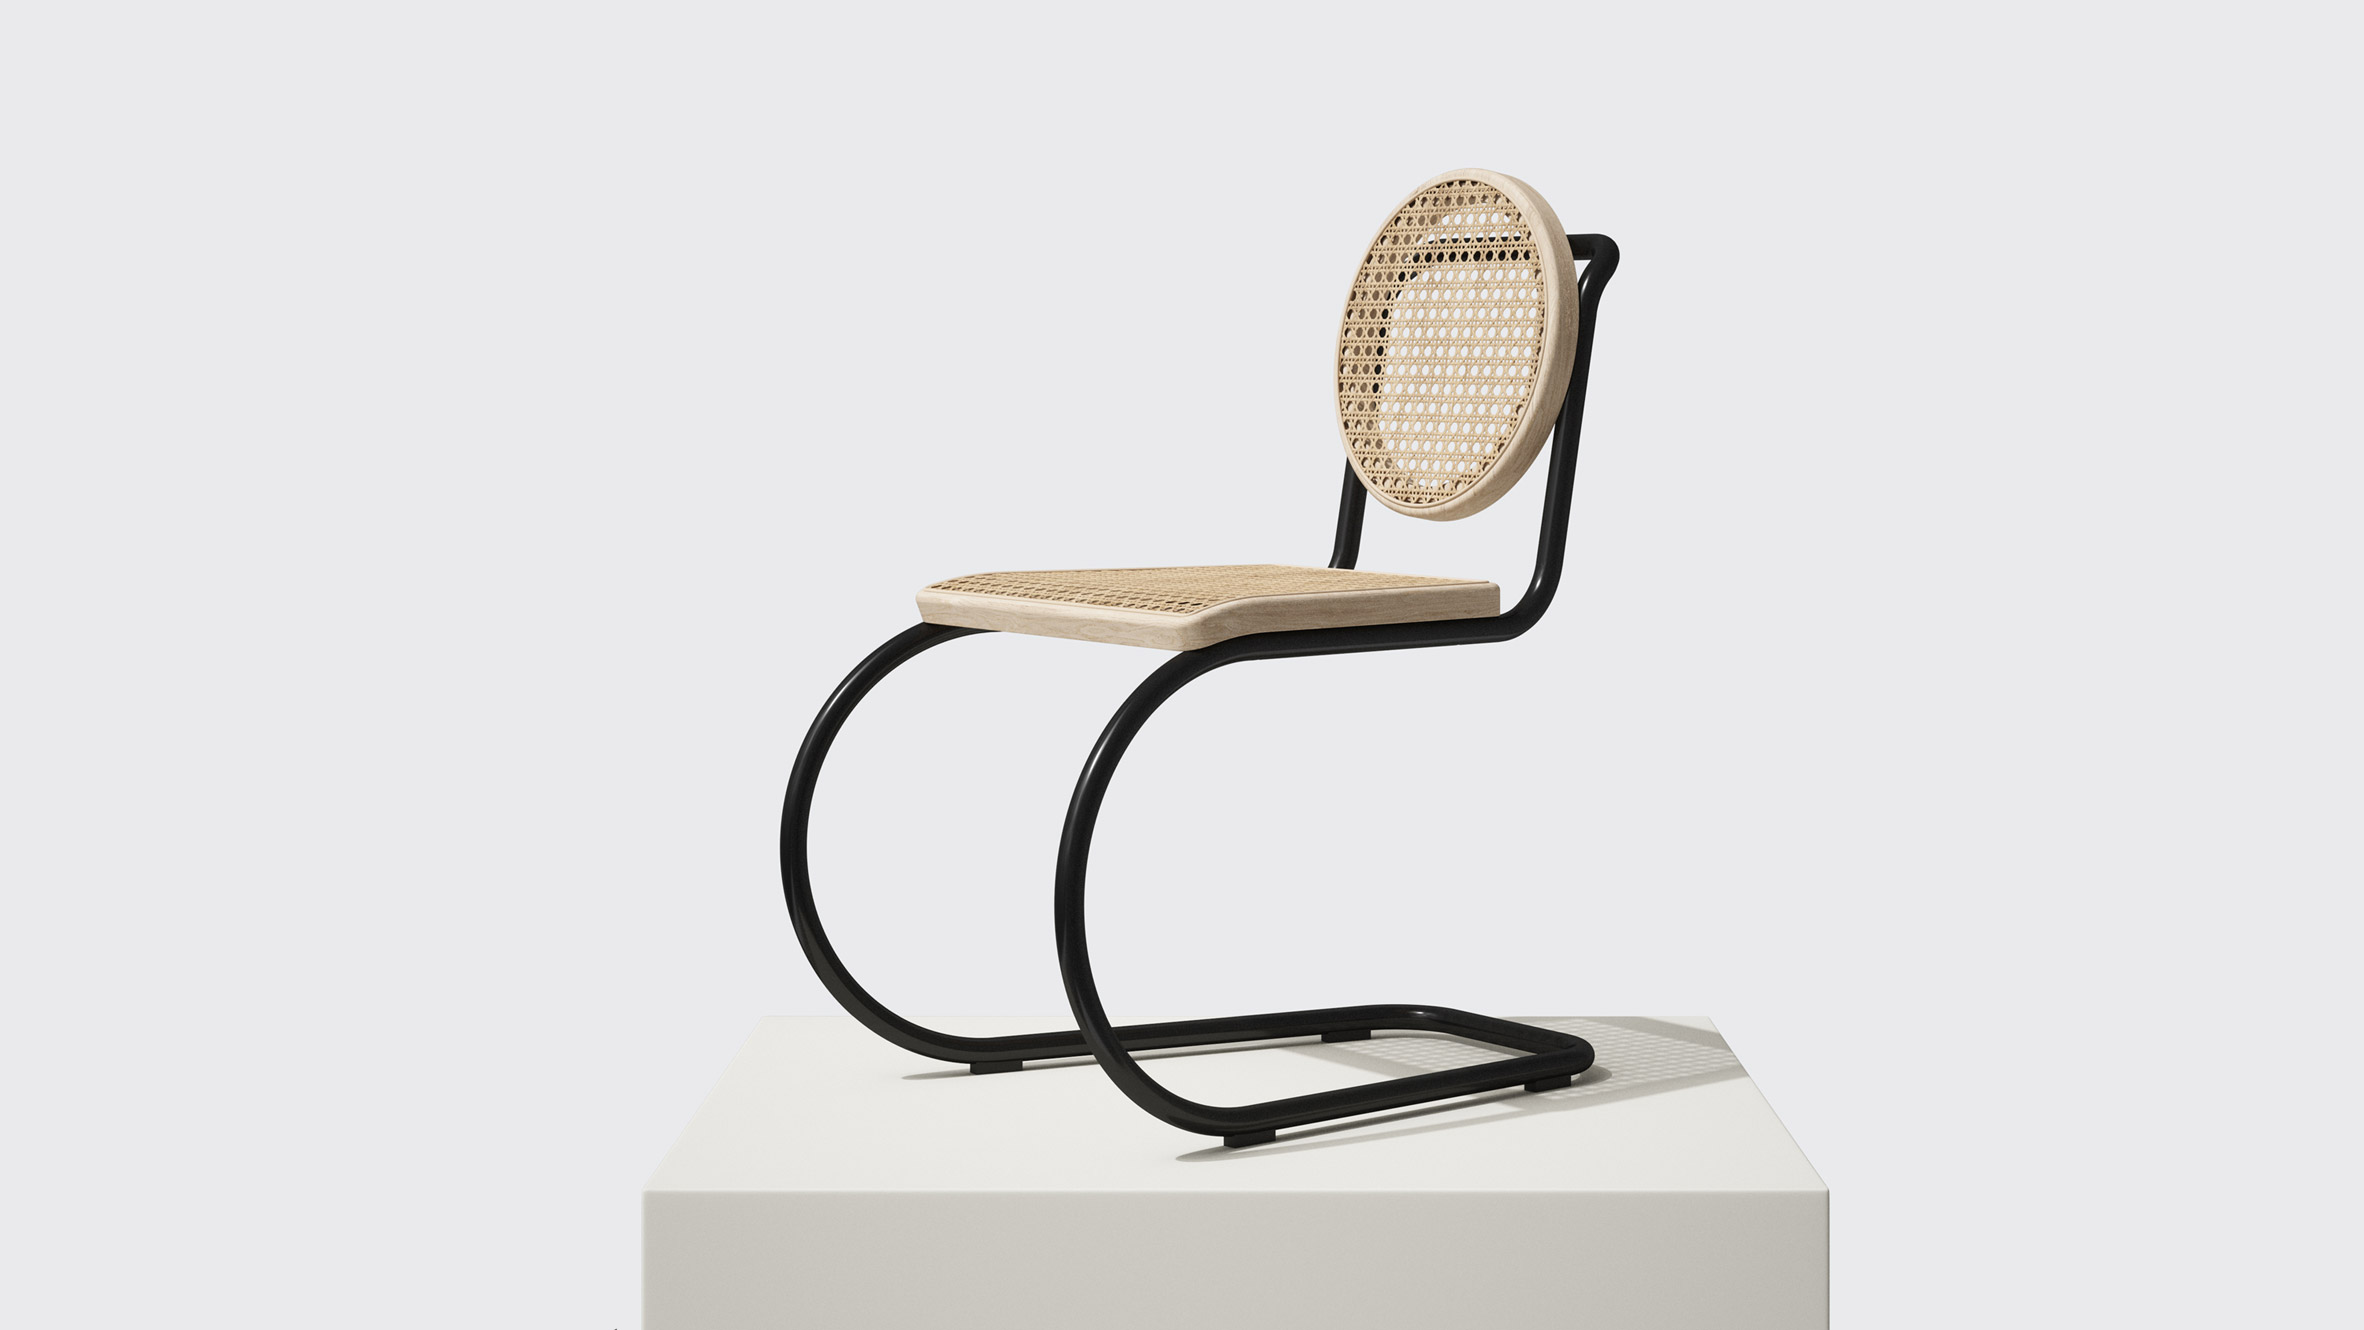 Mater uses recycled plastic and rattan for latest furniture designs